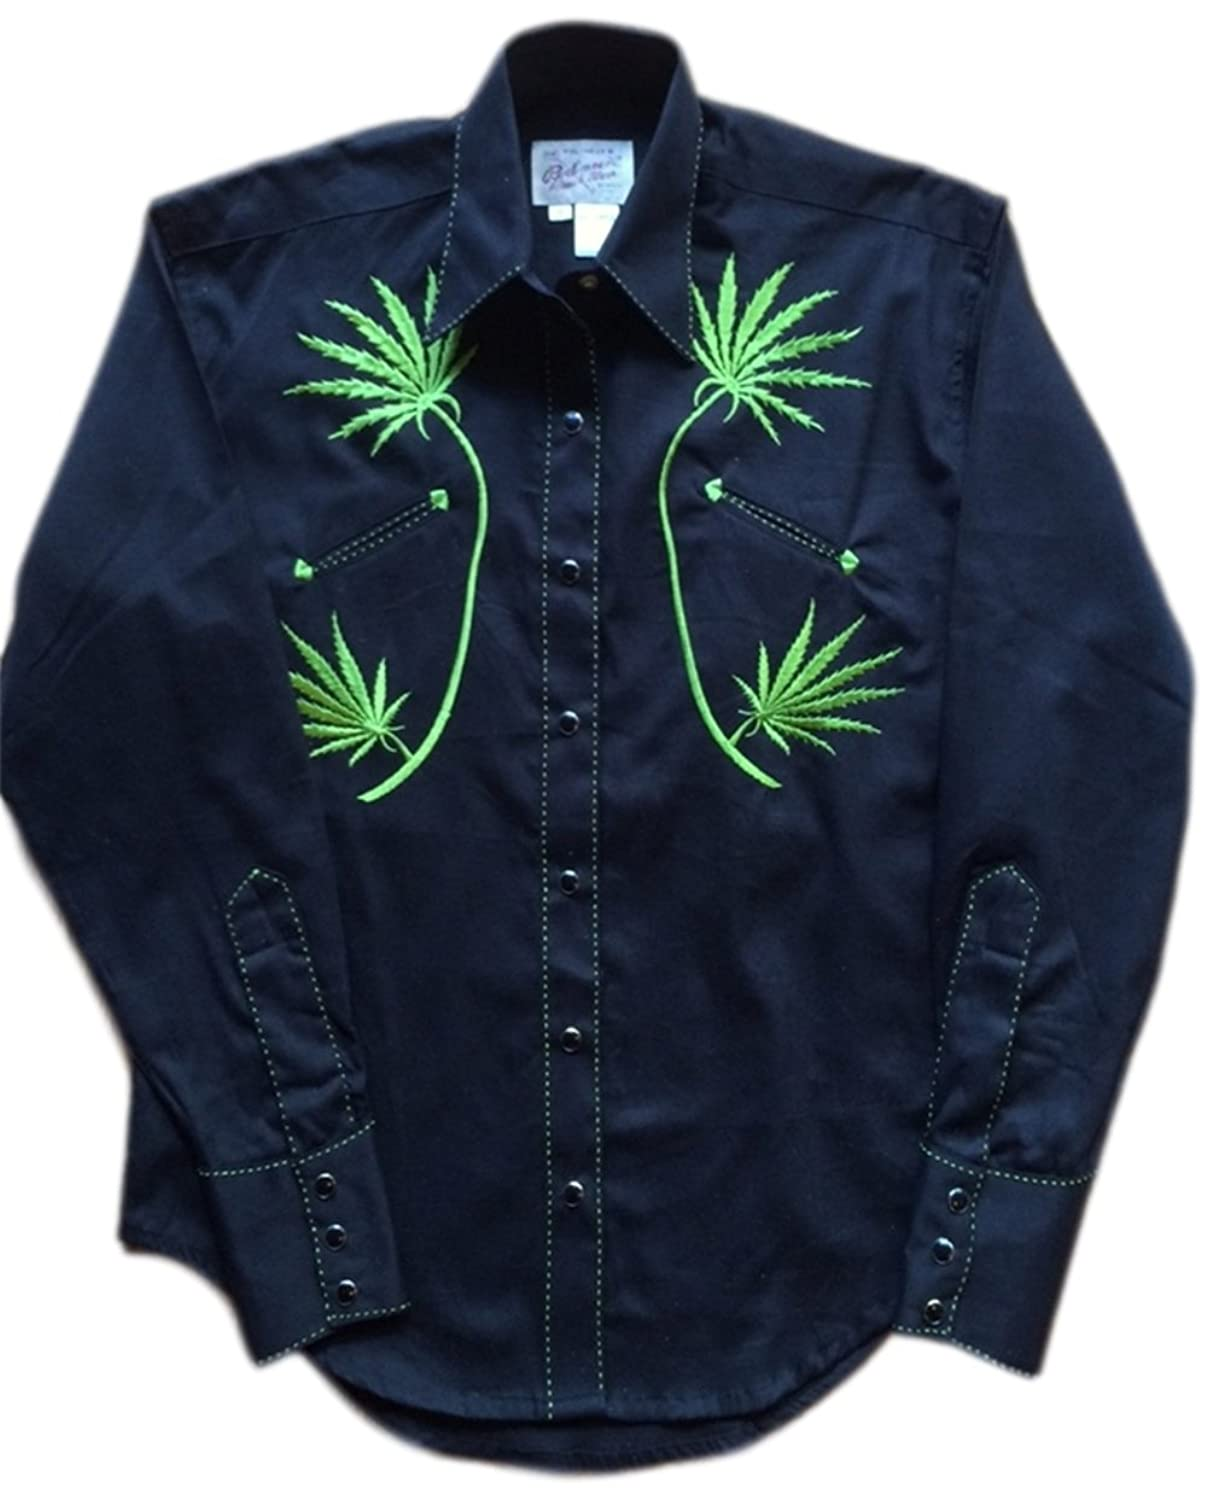 Rockmount Womens Cannabis Cowgirl Country Western Shirt